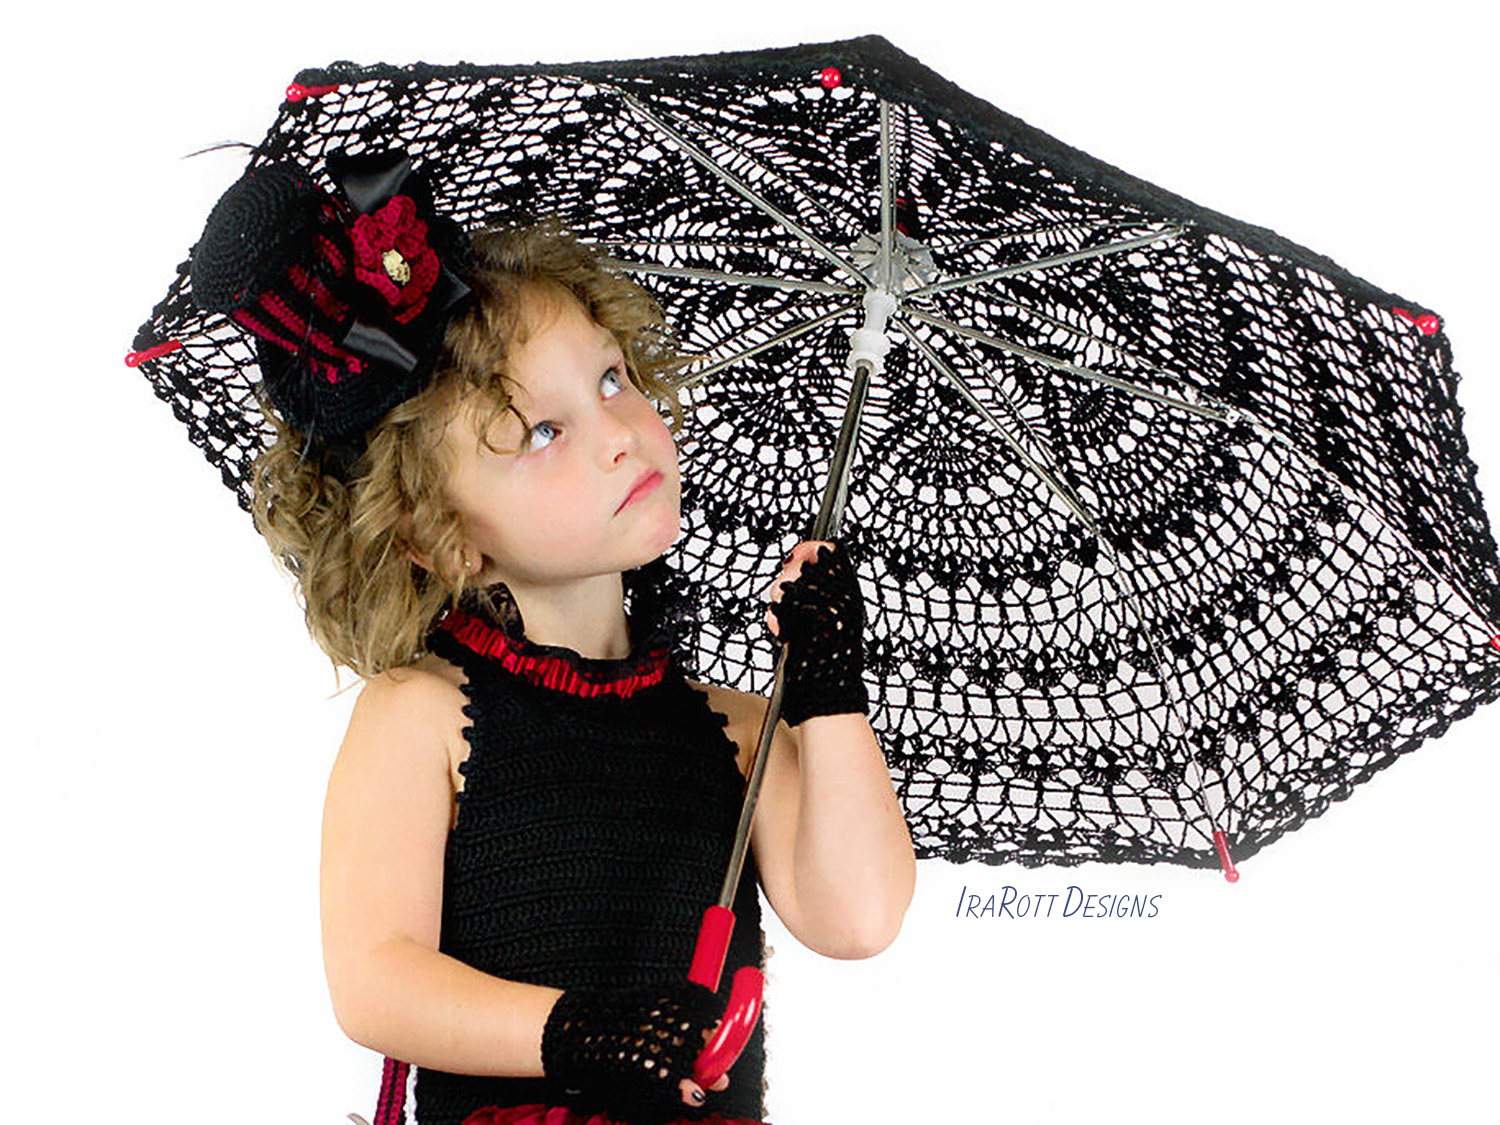 PDF Crochet Pattern For Making A Stunning Gothic Steampunk Style Lace Parasol Umbrella Kids